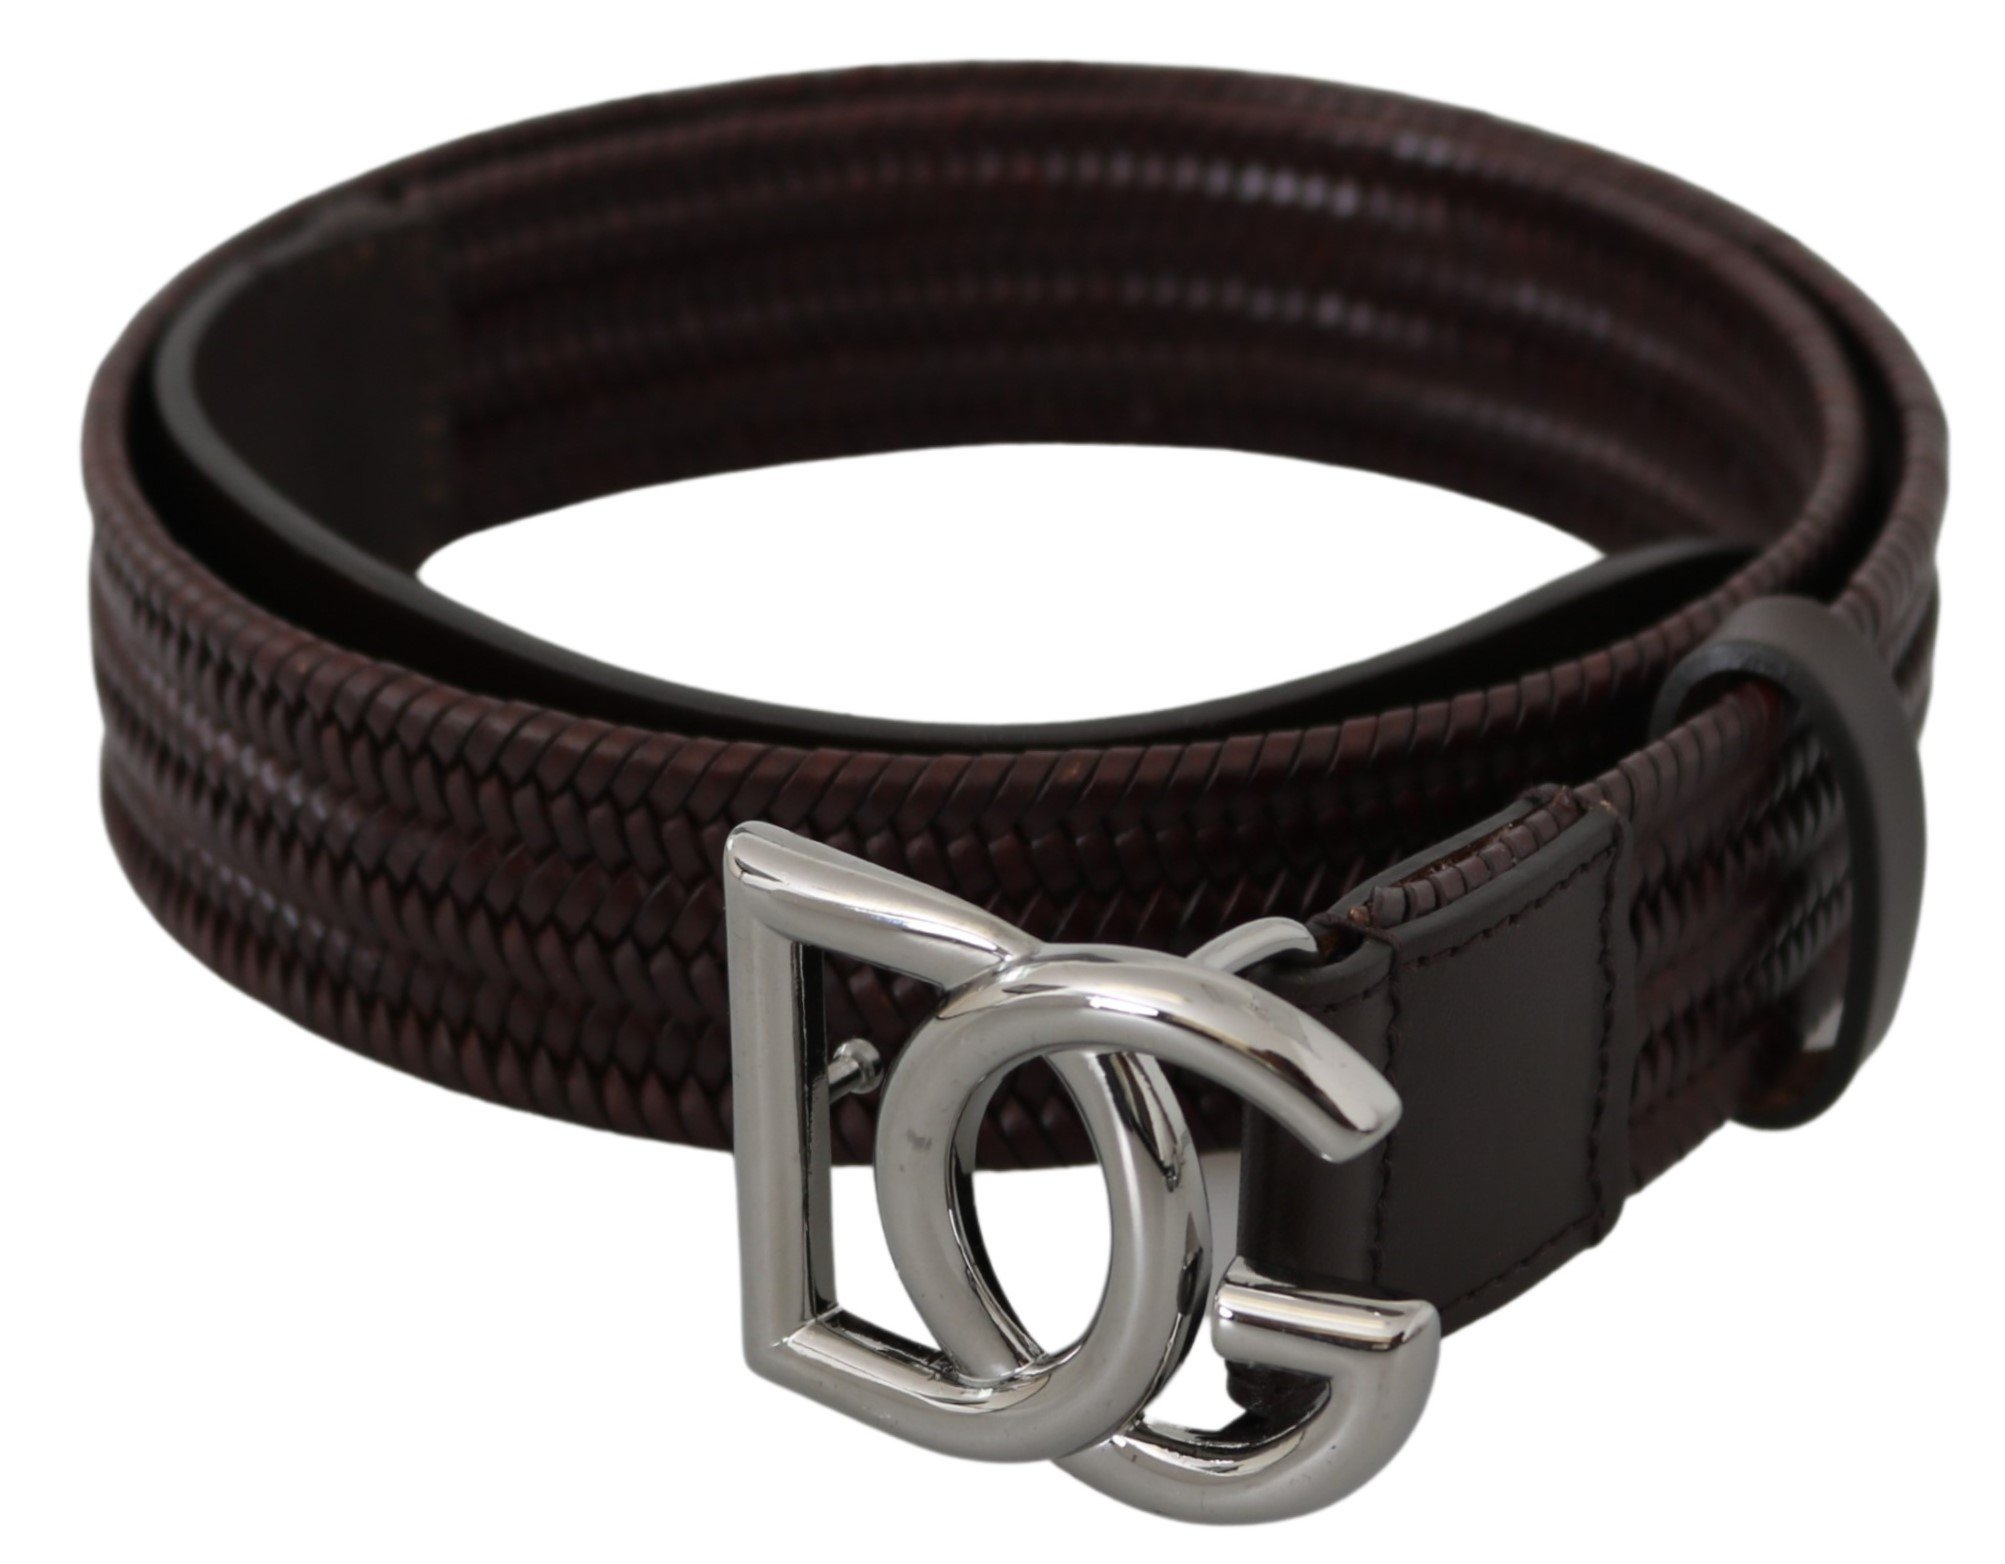 Brown Leather Knitted DG Silver Buckle Belt - 90 cm / 36 Inches